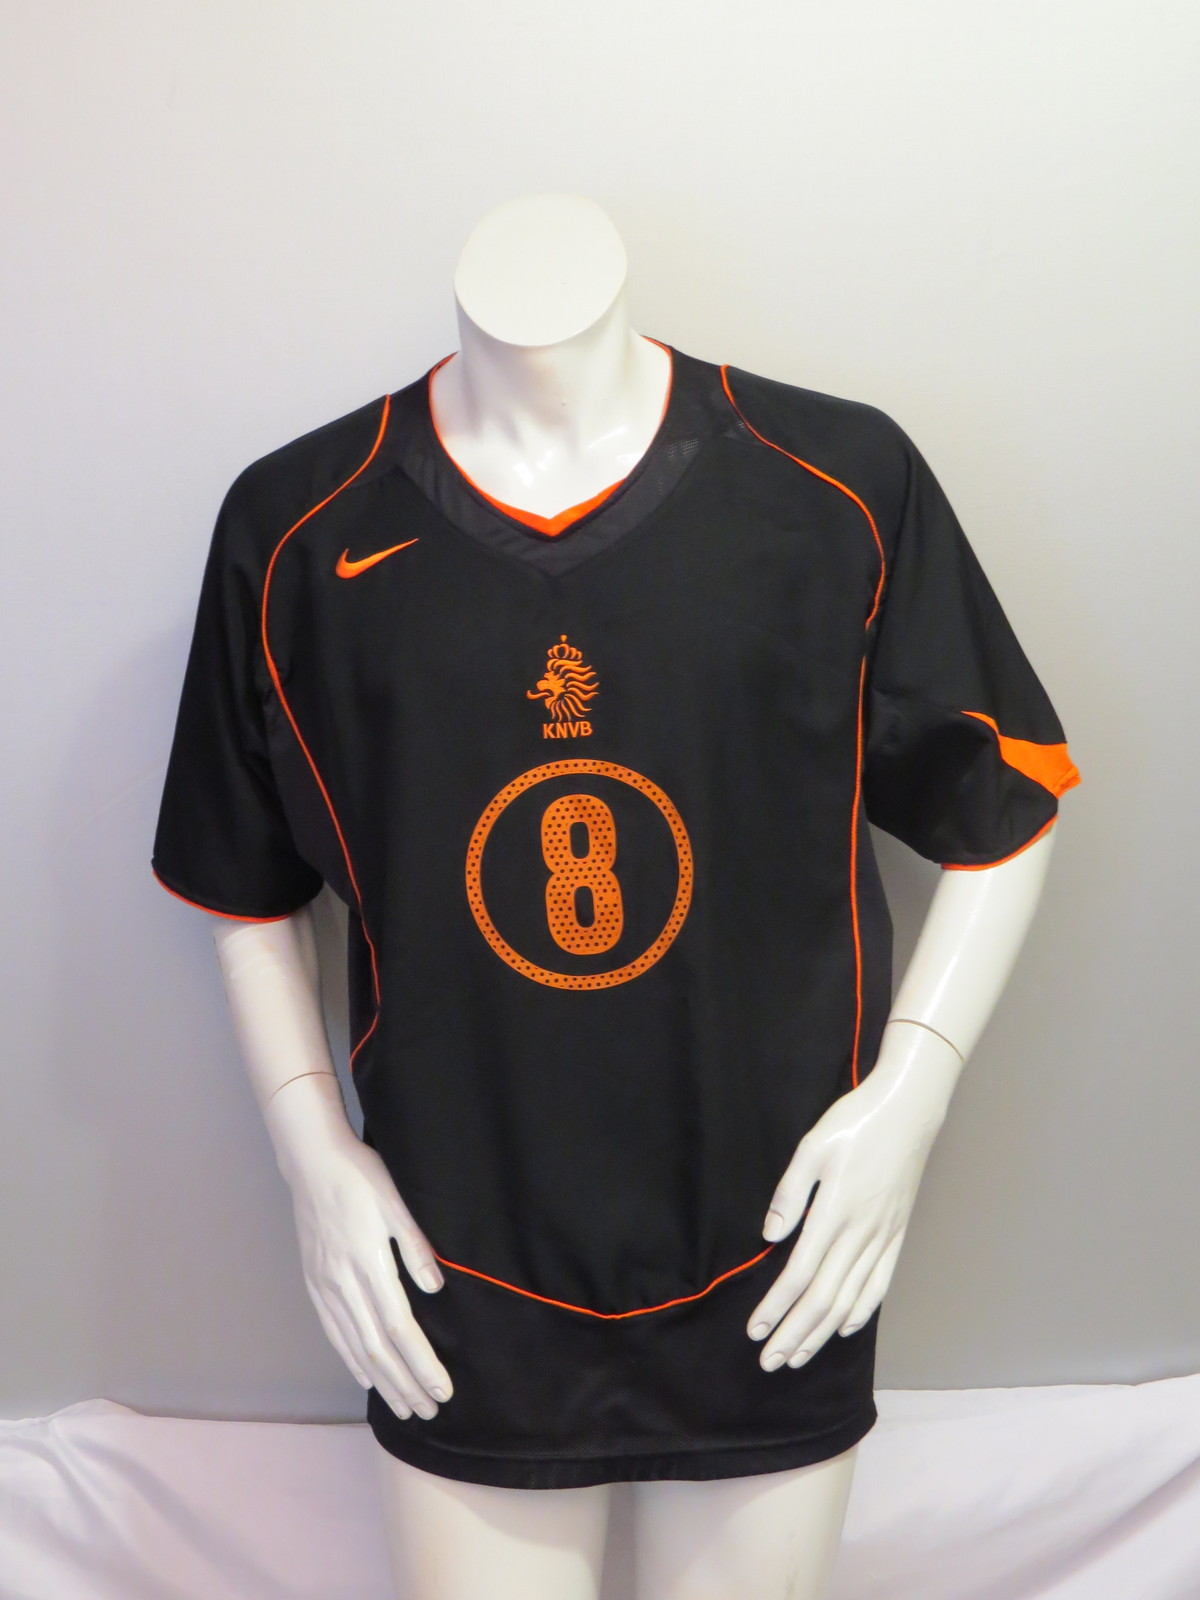 cd1e3a740ea Team Netherlands Soccer Jersey - 2006 Away and 9 similar items. Img 0187